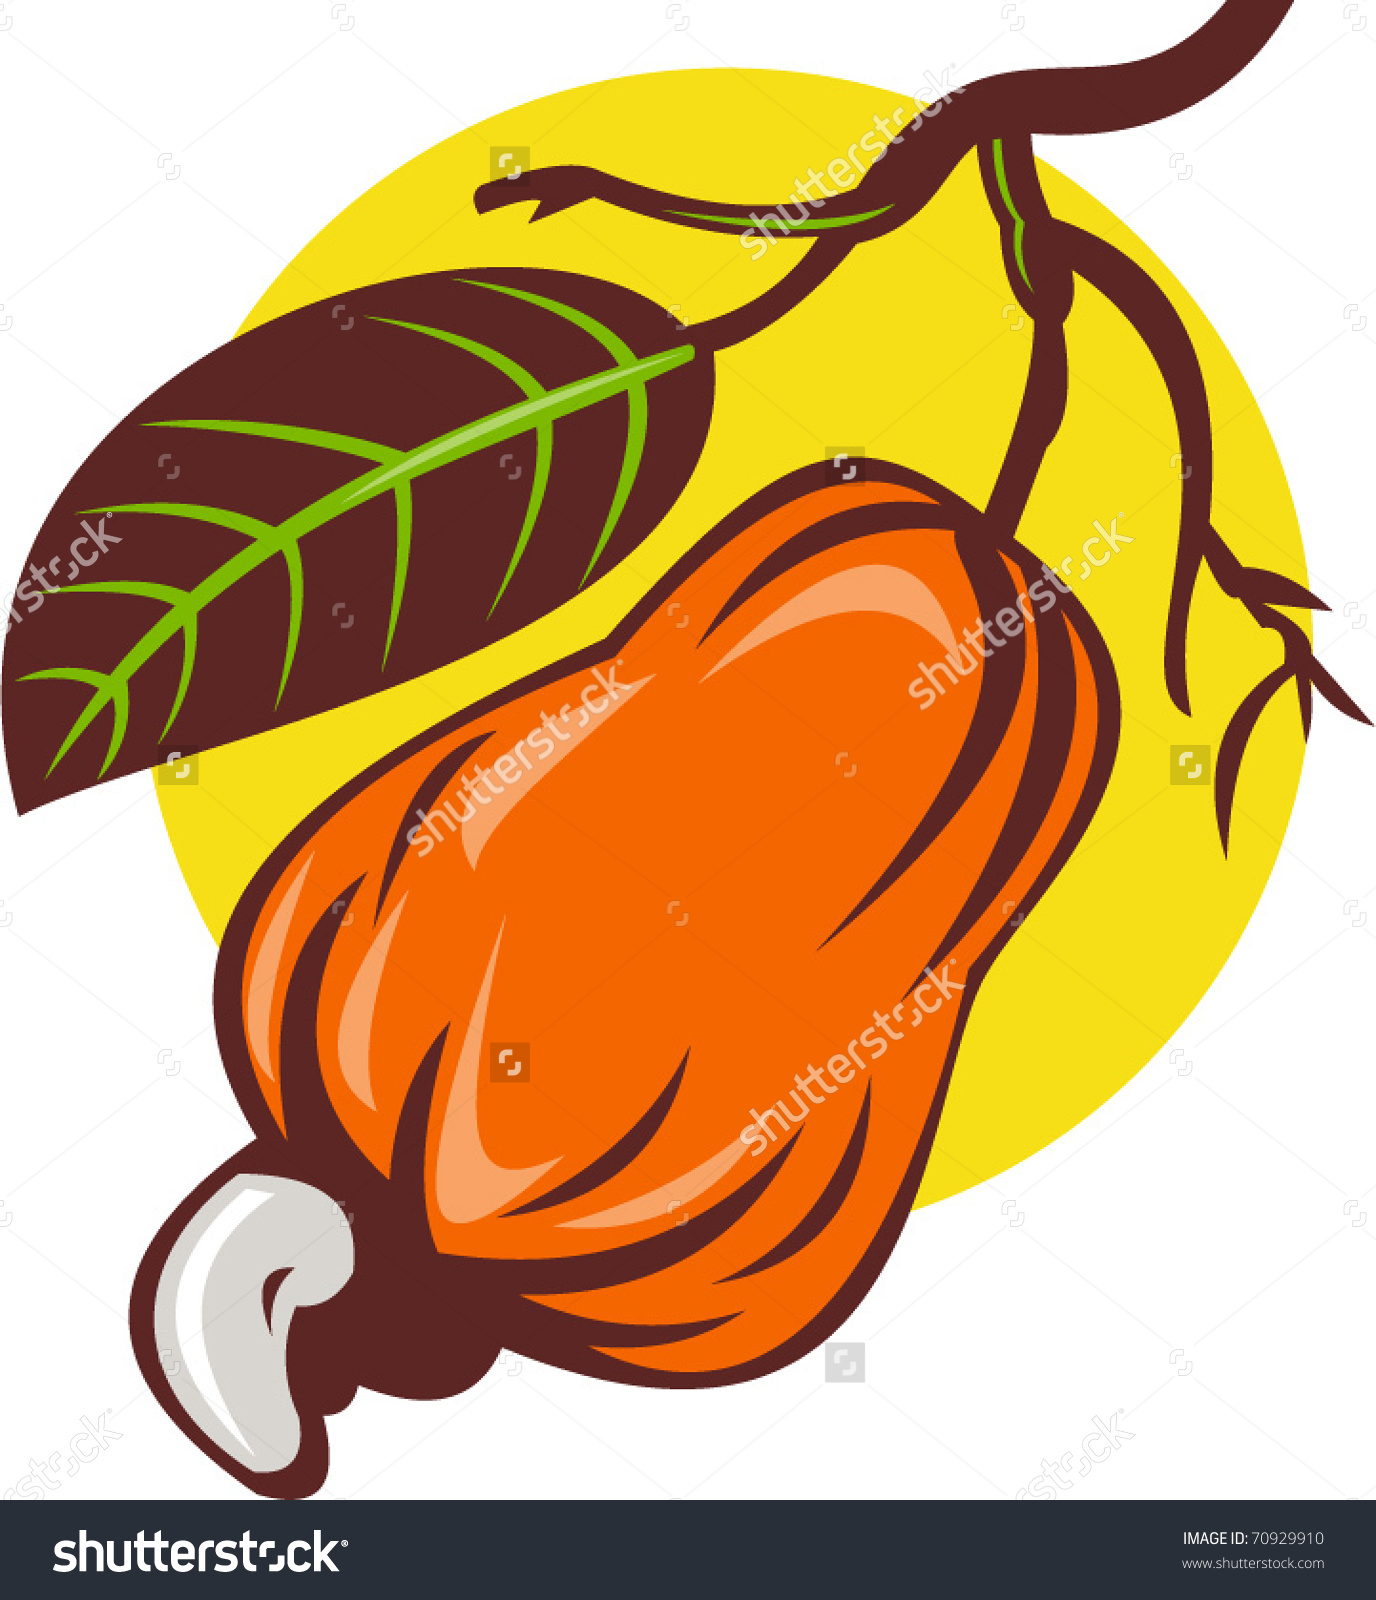 Vector Illustration Cashew Nut Fruit Leaf Stock Vector 70929910.